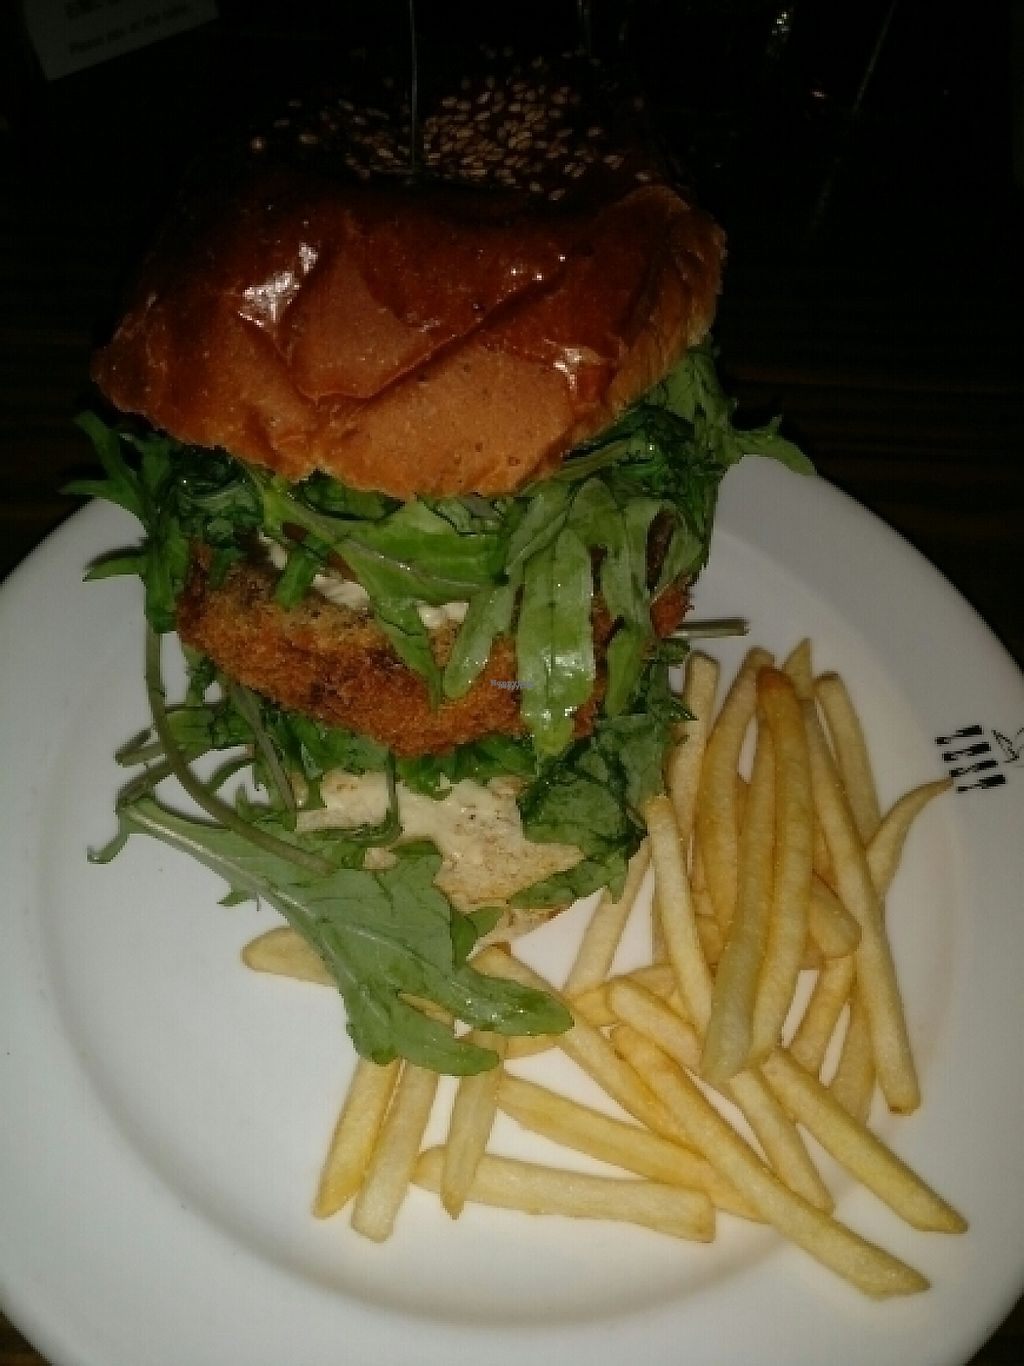 """Photo of Zest Cantina  by <a href=""""/members/profile/Pinkymoemox"""">Pinkymoemox</a> <br/>veggie burger  <br/> December 6, 2016  - <a href='/contact/abuse/image/82319/197795'>Report</a>"""